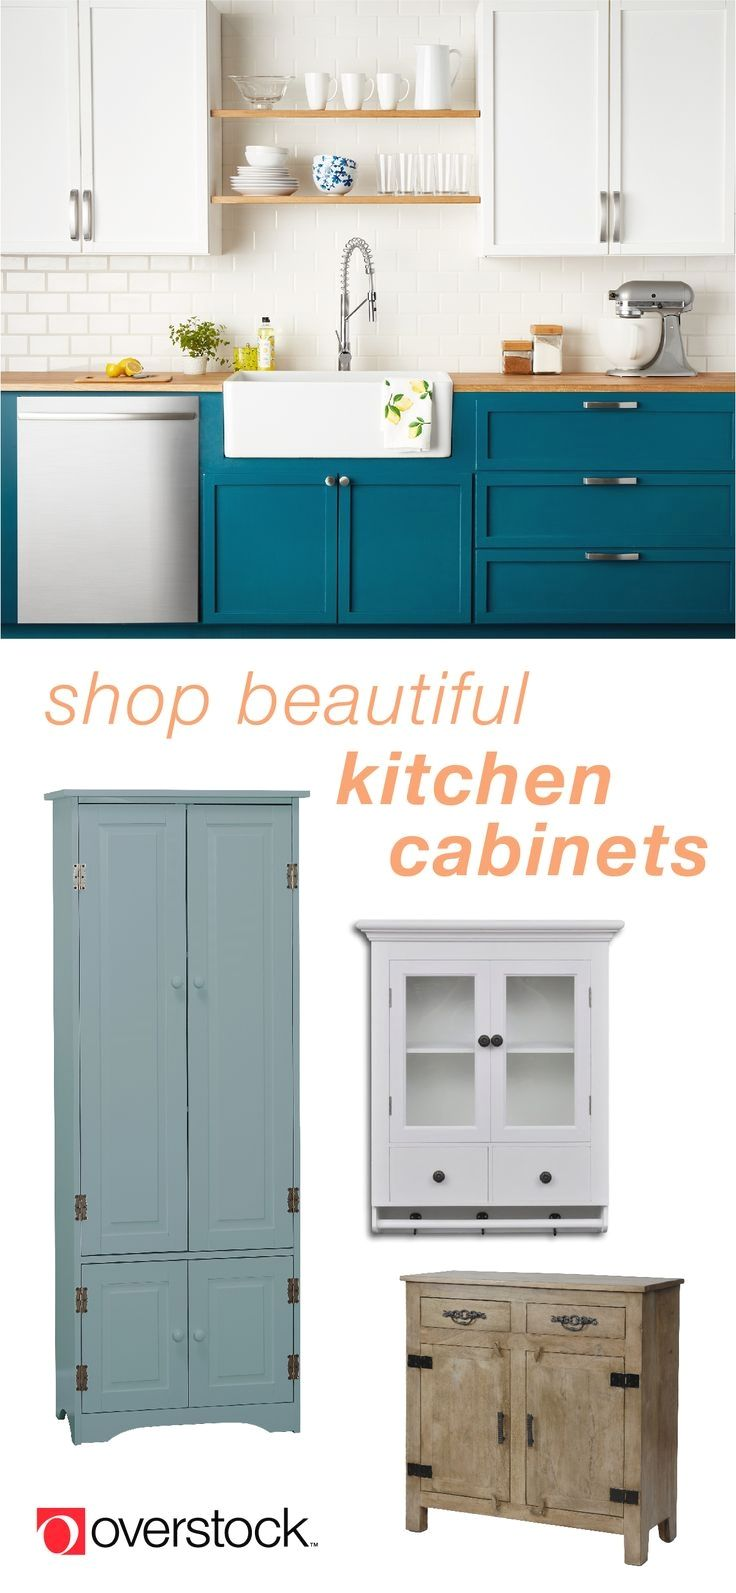 Kitchen Cabinet Molding Images and Pics of White Kitchen Cabinet ...